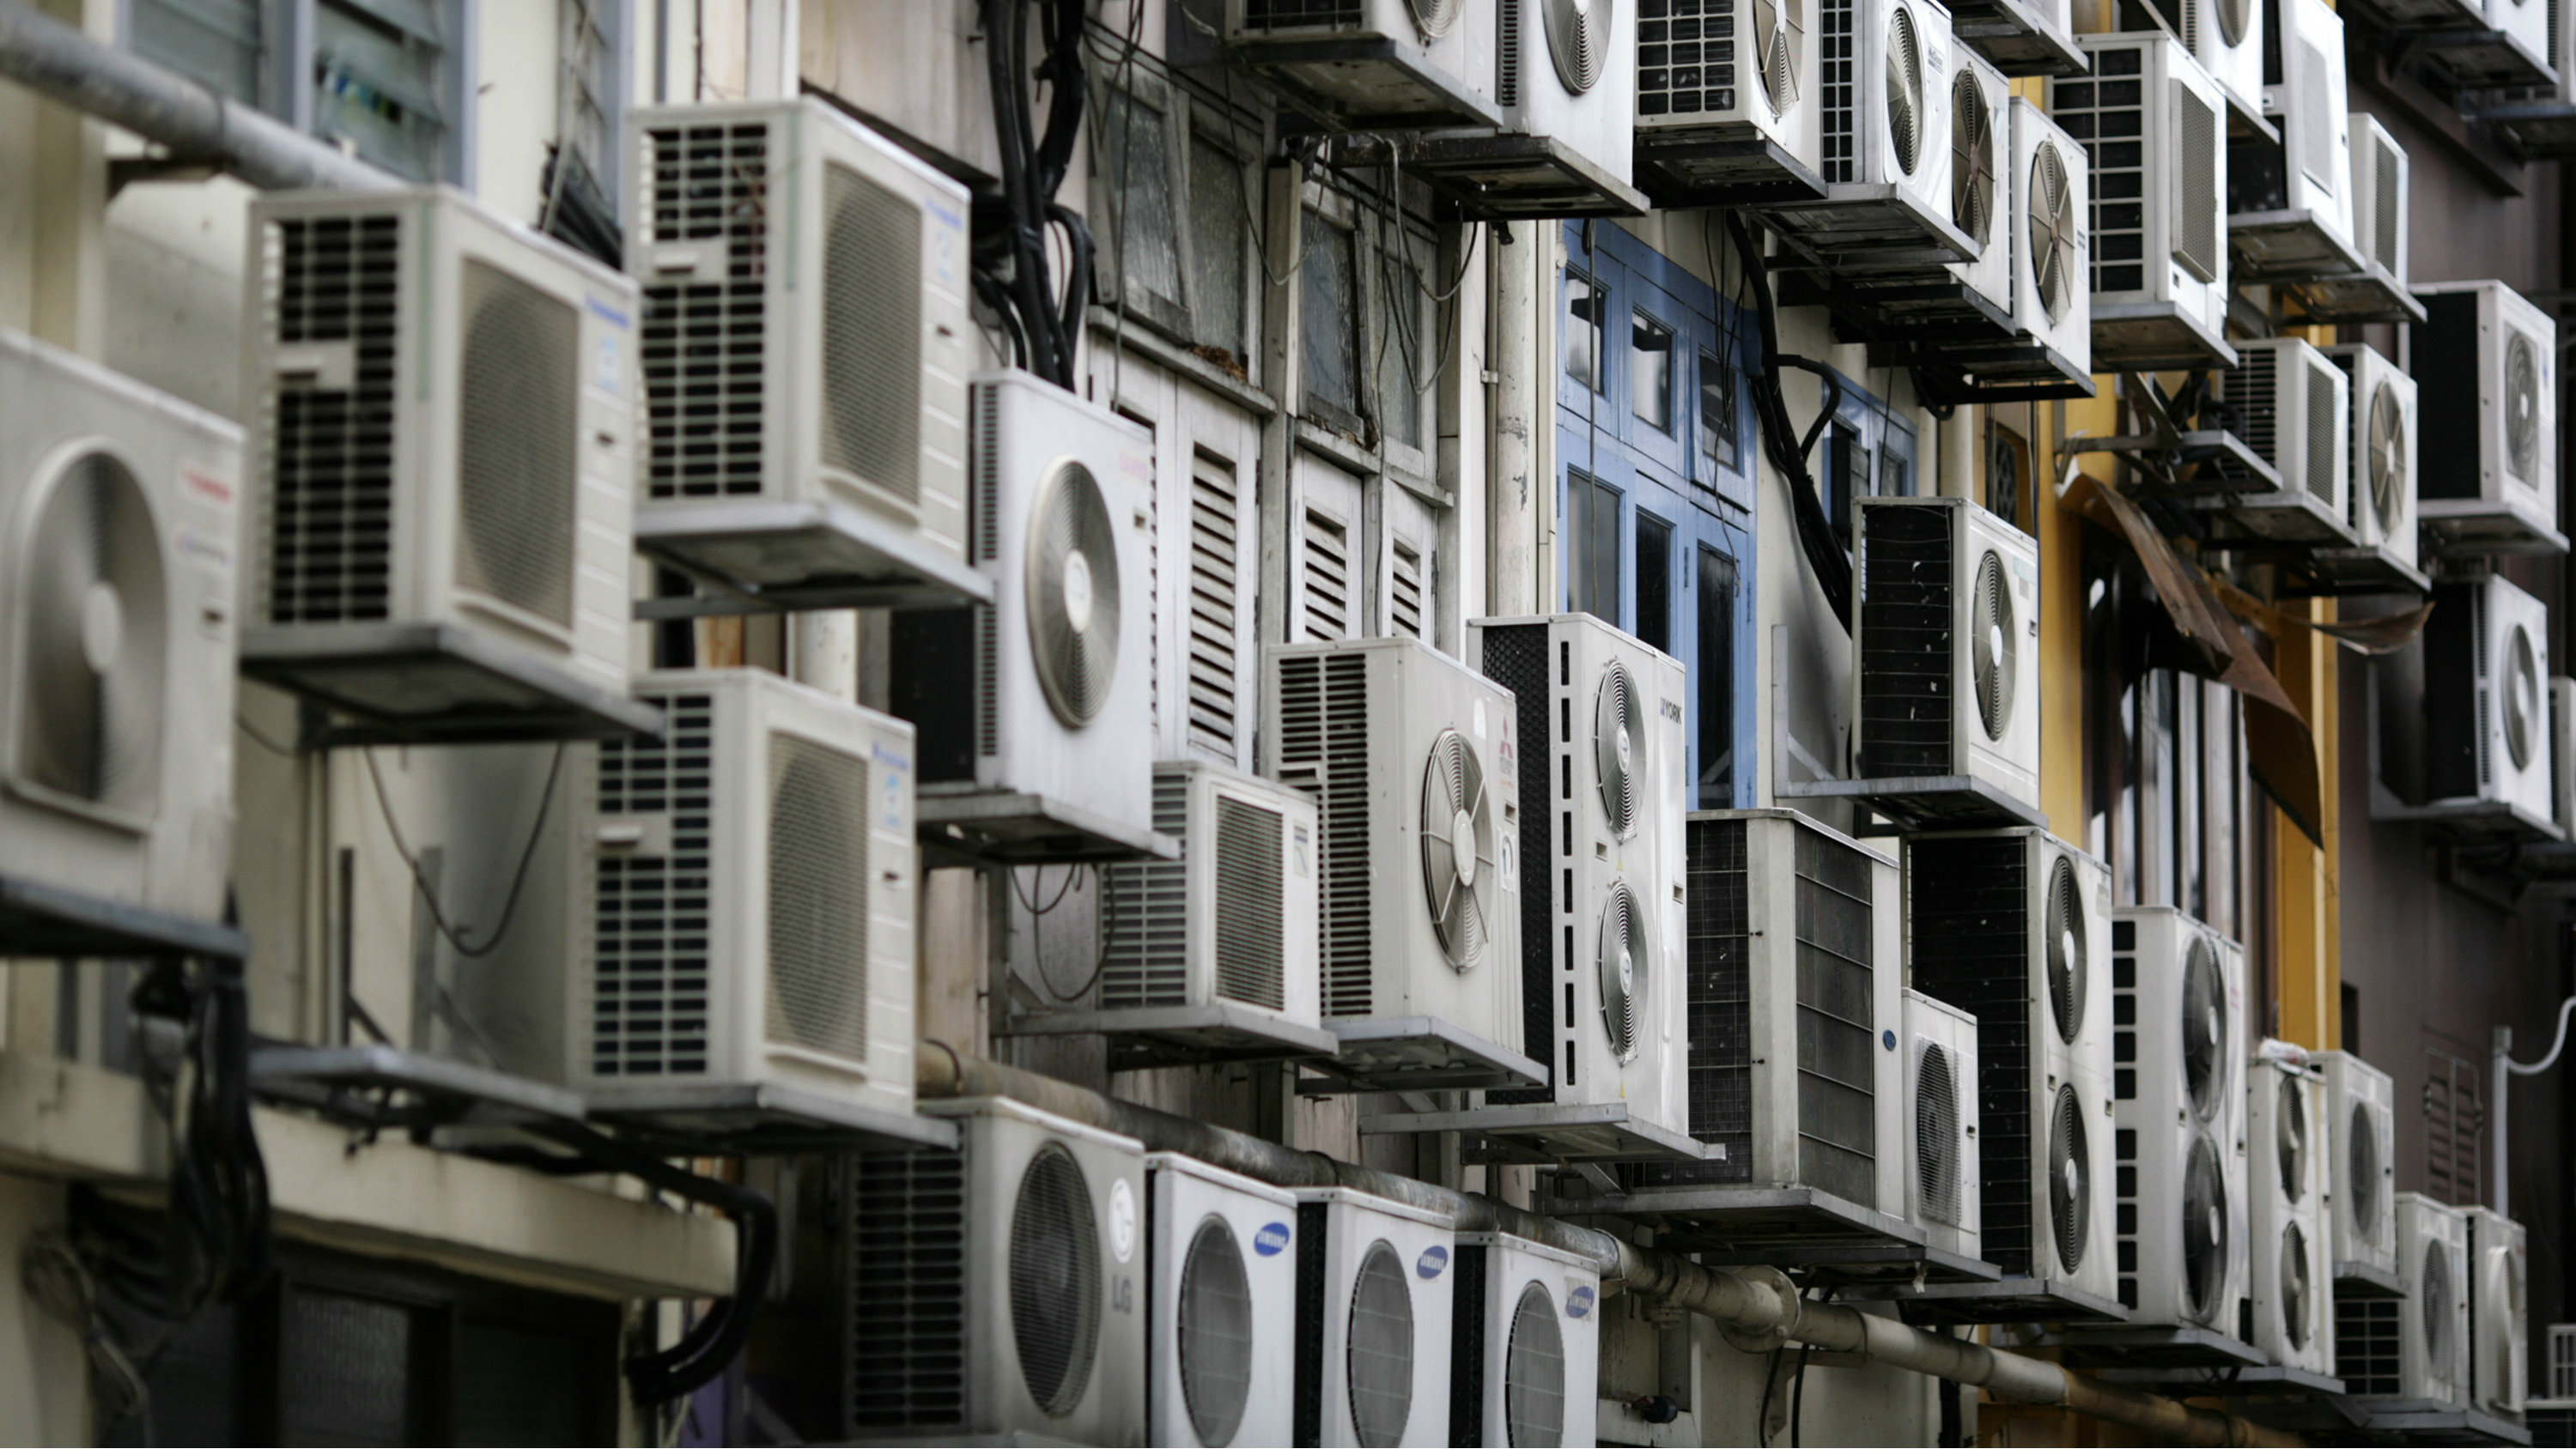 Rows of air conditioners are seen on the walls of a building in Singapore's financial district December 11, 2009. REUTERS/Vivek Prakash (SINGAPORE ENVIRONMENT ENERGY POLITICS)